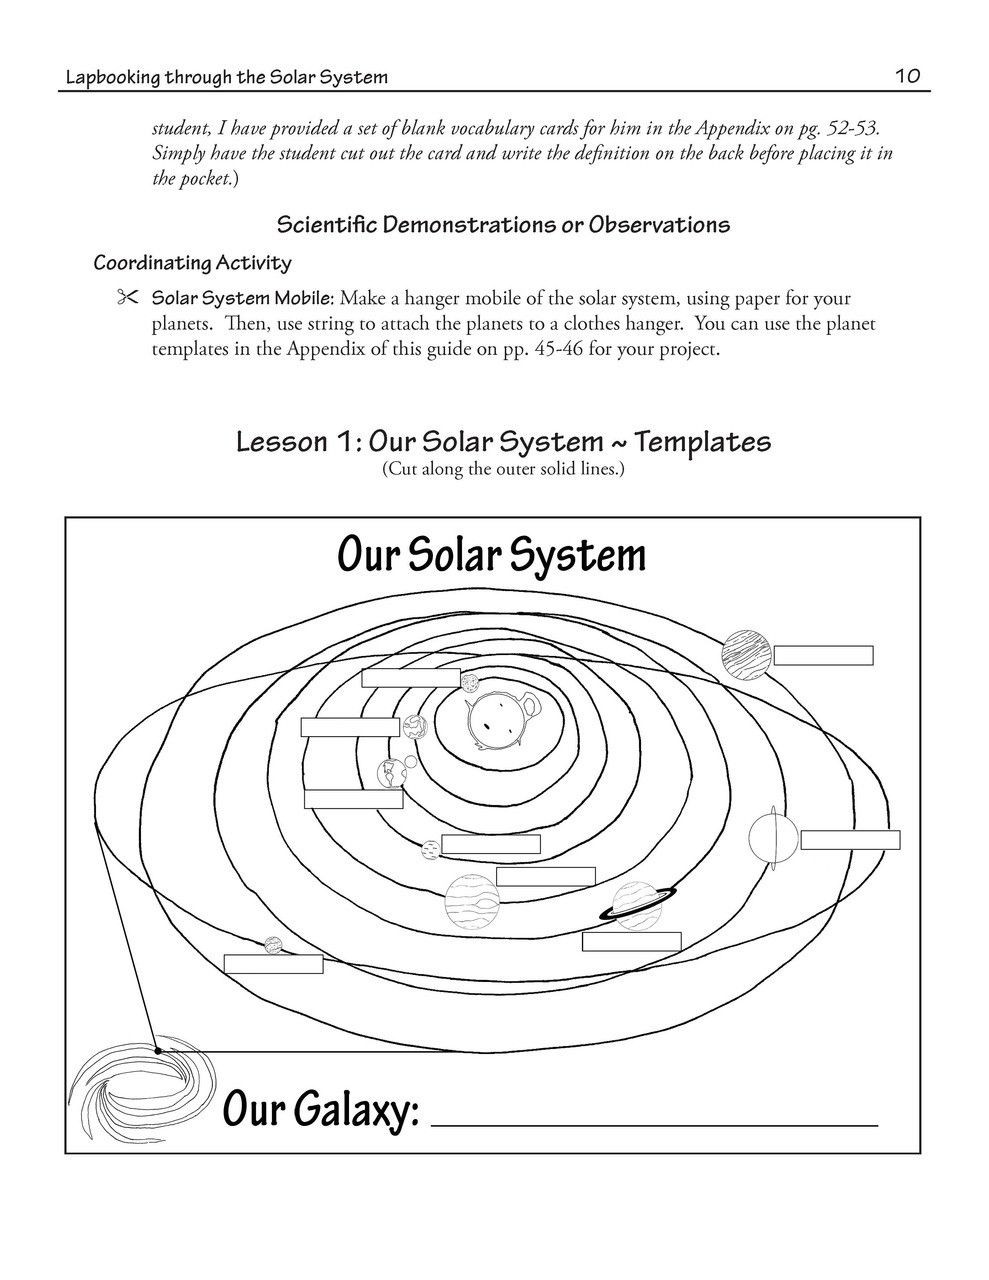 Solar System Worksheet Middle School Lapbooking Through solar System Ebook